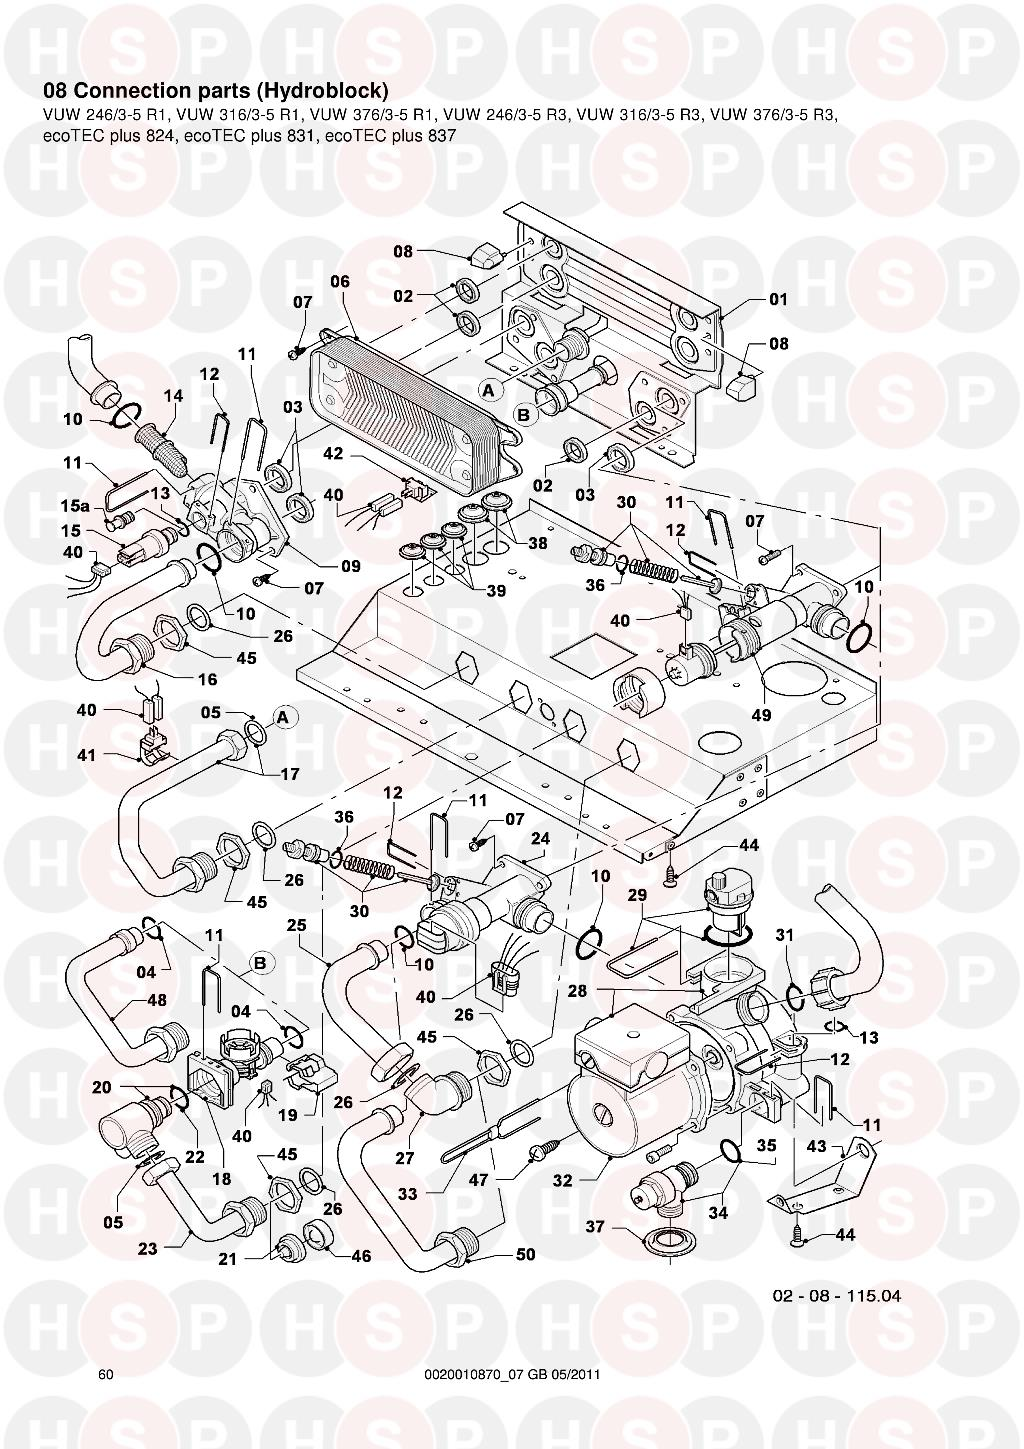 Vaillant ecotec plus 831 vuw 3163 5 2005 2013 08 connection parts 08 connection parts hydroblock diagram for vaillant ecotec plus 831 vuw 3163 cheapraybanclubmaster Image collections